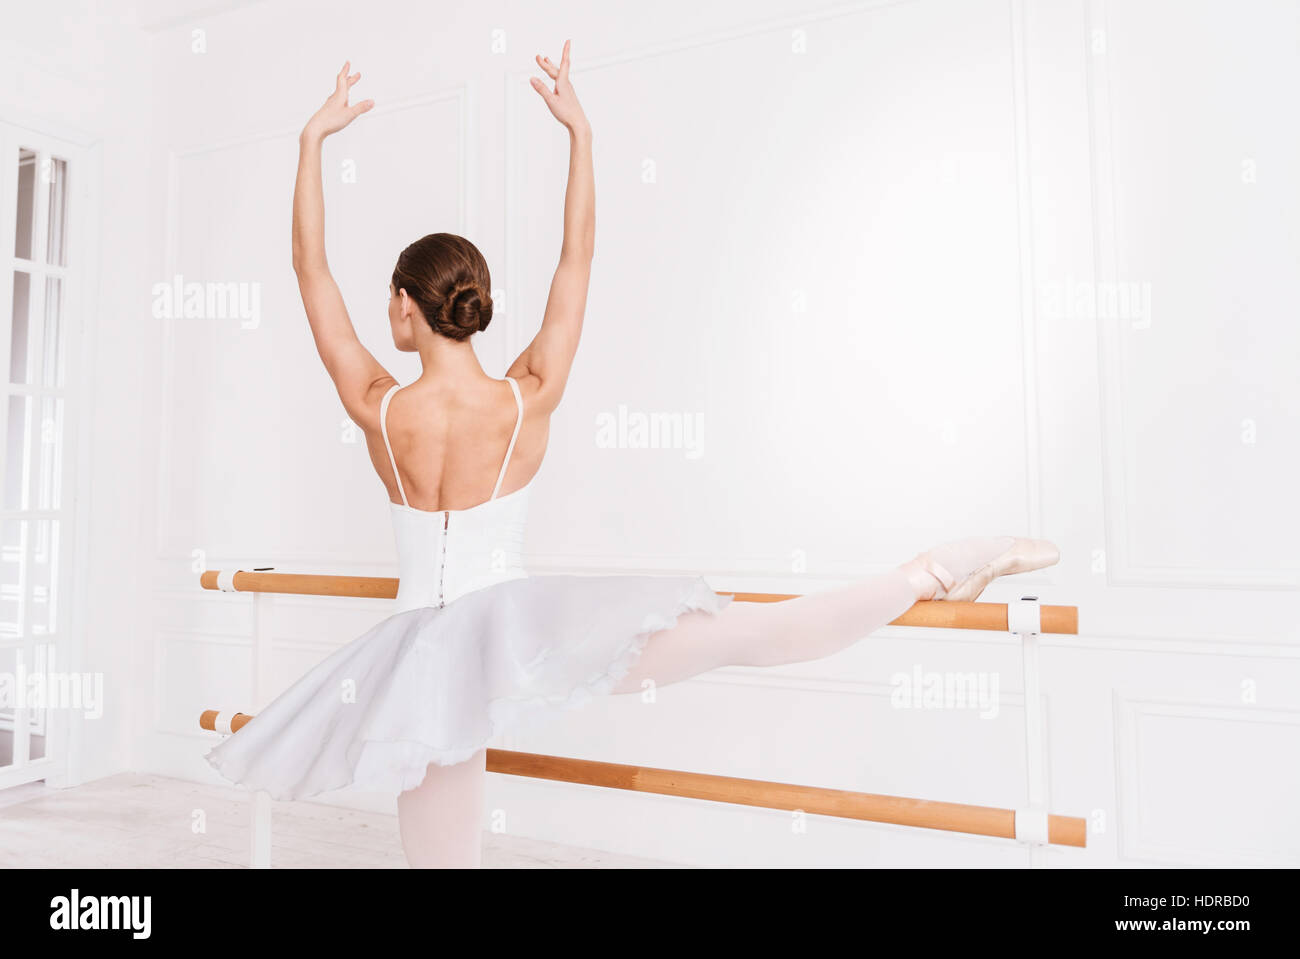 Tender ballerina keeping arms like in fifth position - Stock Image